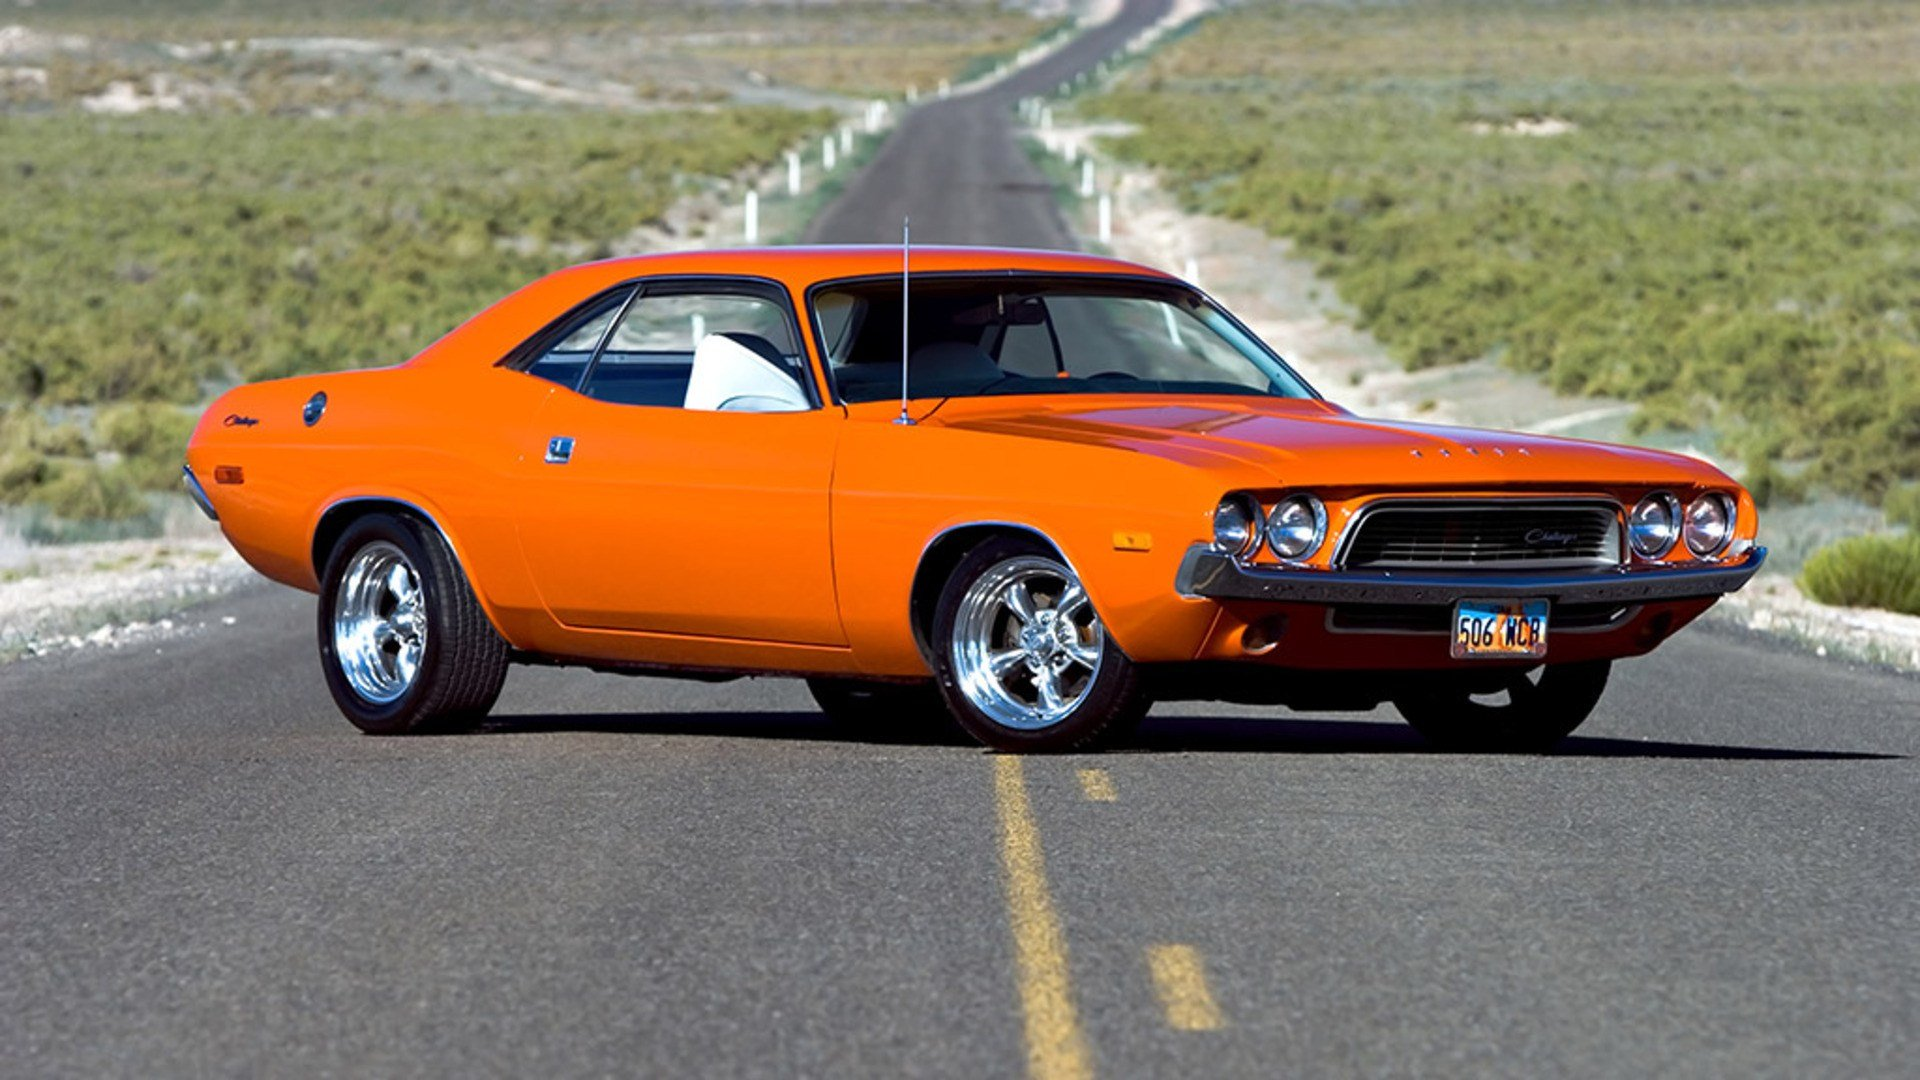 New Dodge Challenger Roads Muscle Cars Orange Hot Rod On This Month